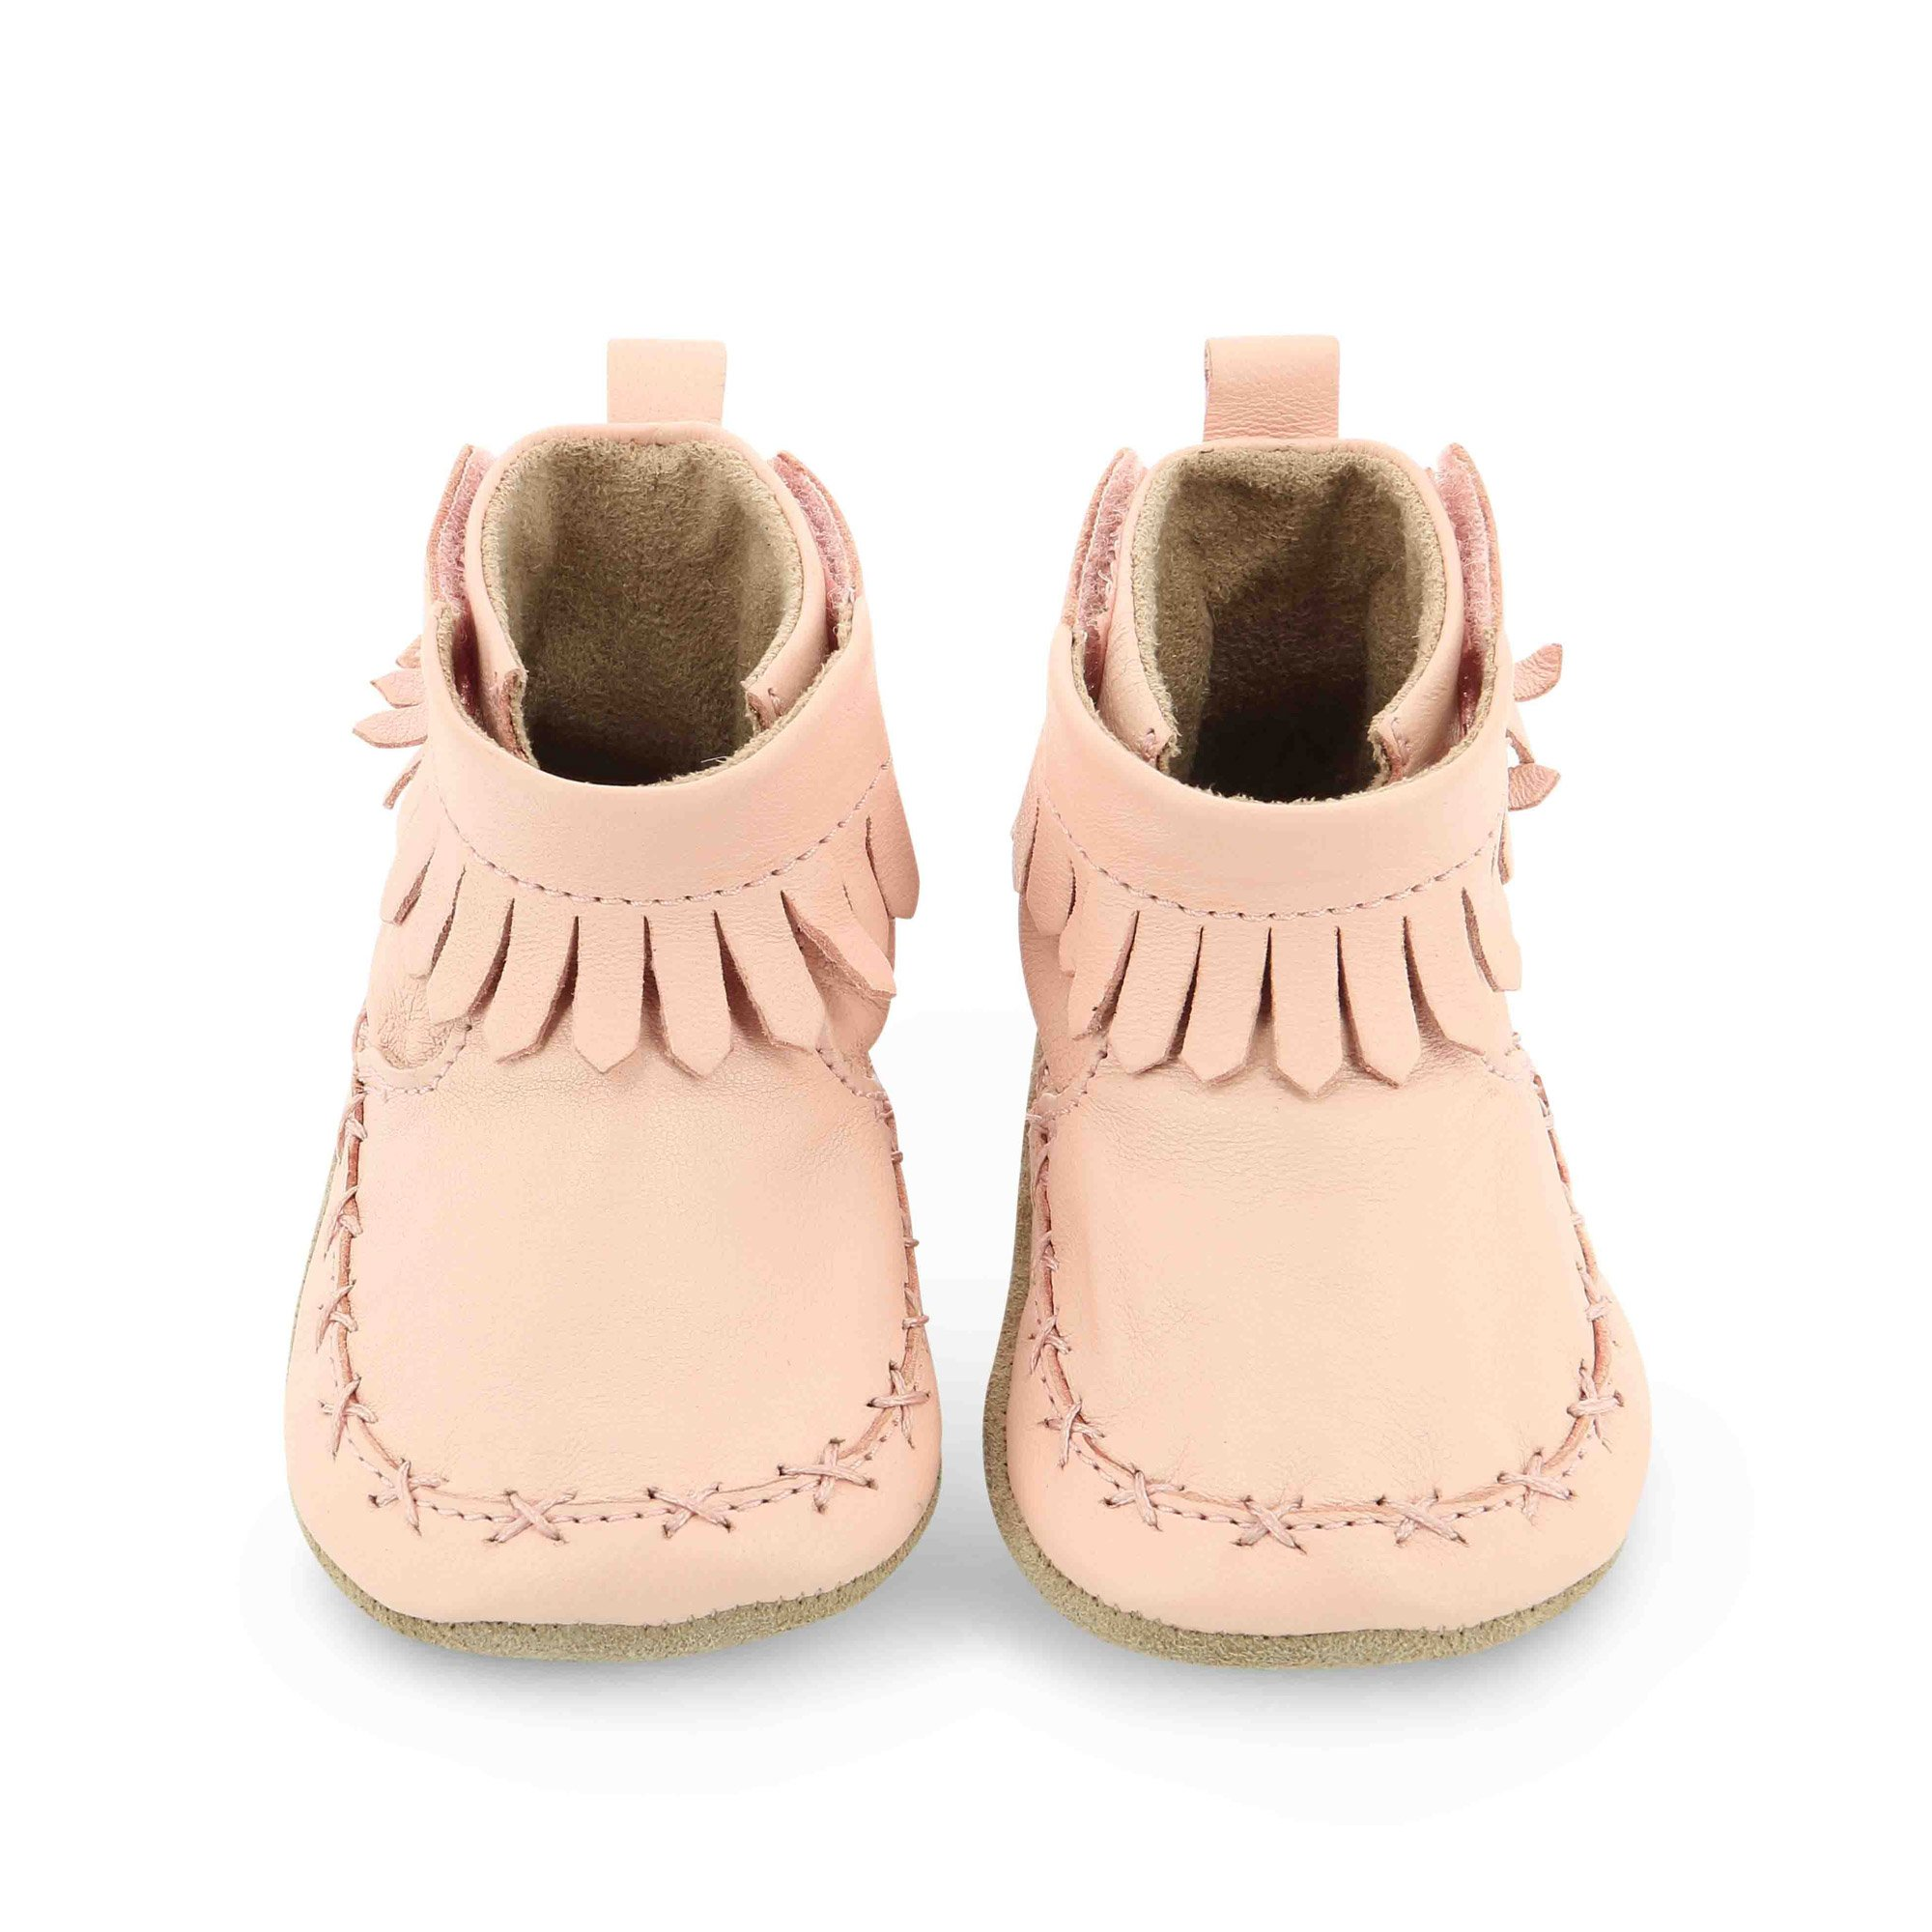 Chaussons Funky Rose clair 17/18 de Robeez